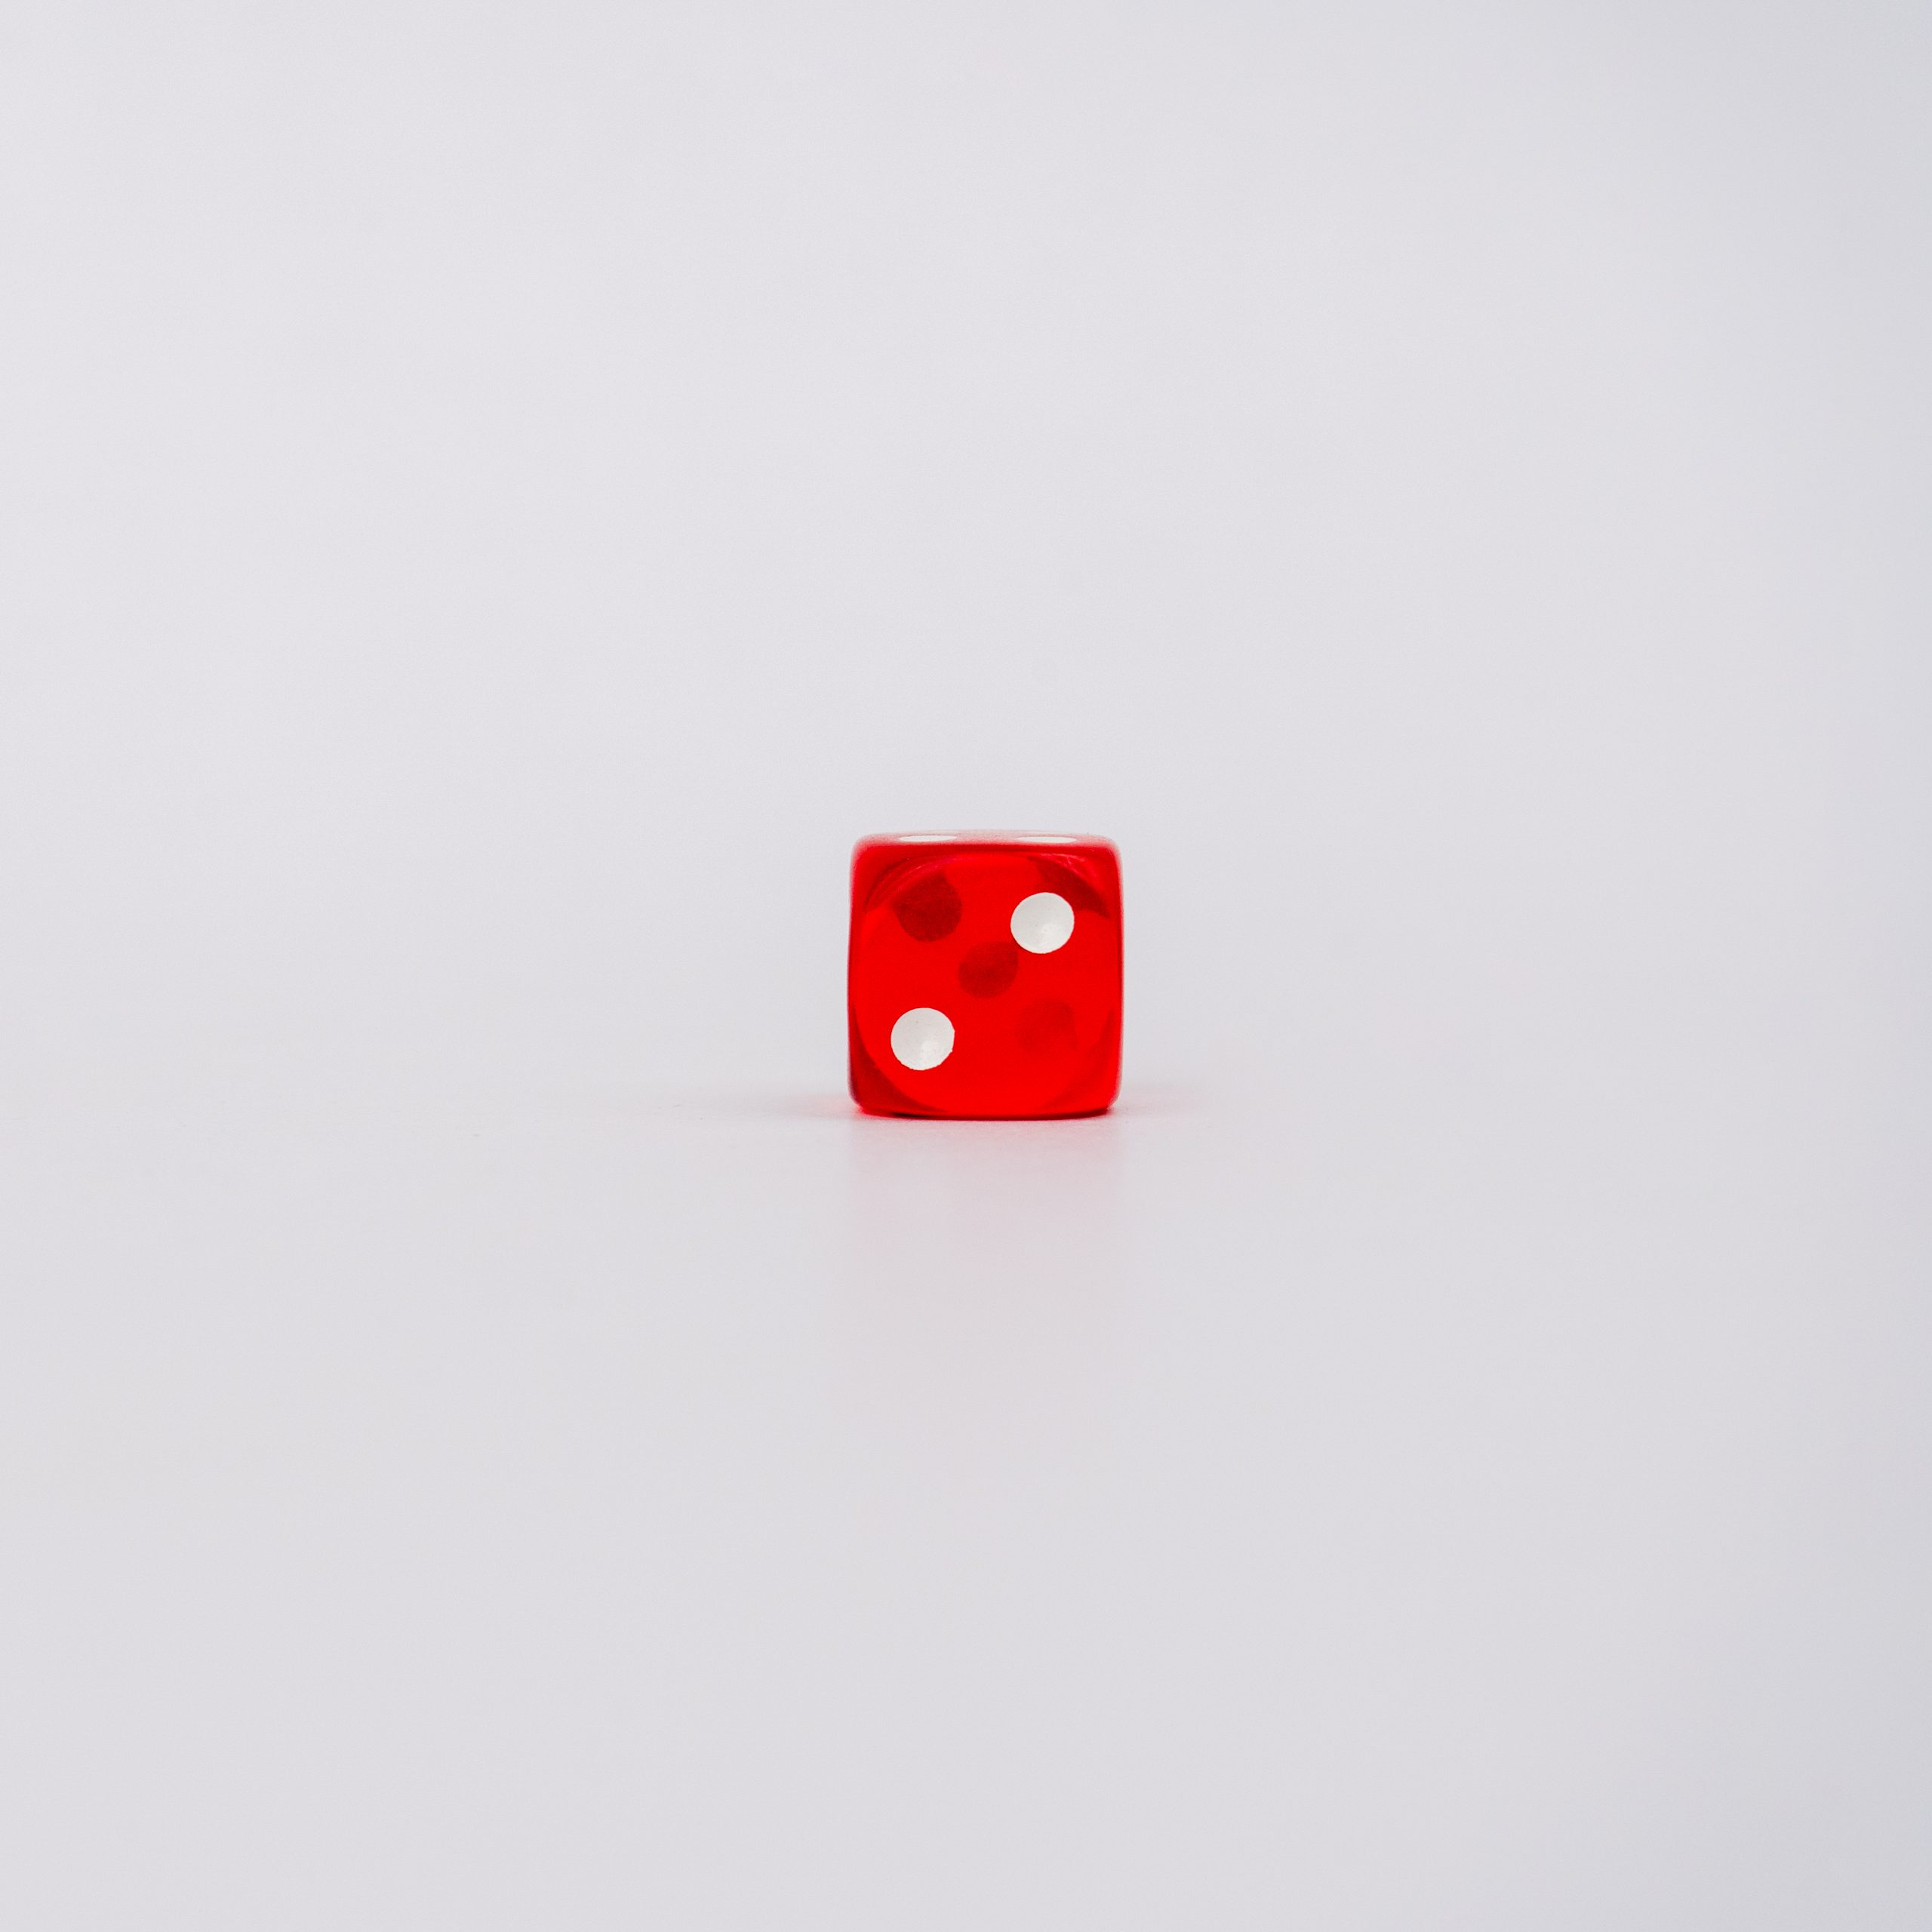 Two on red dice on white background